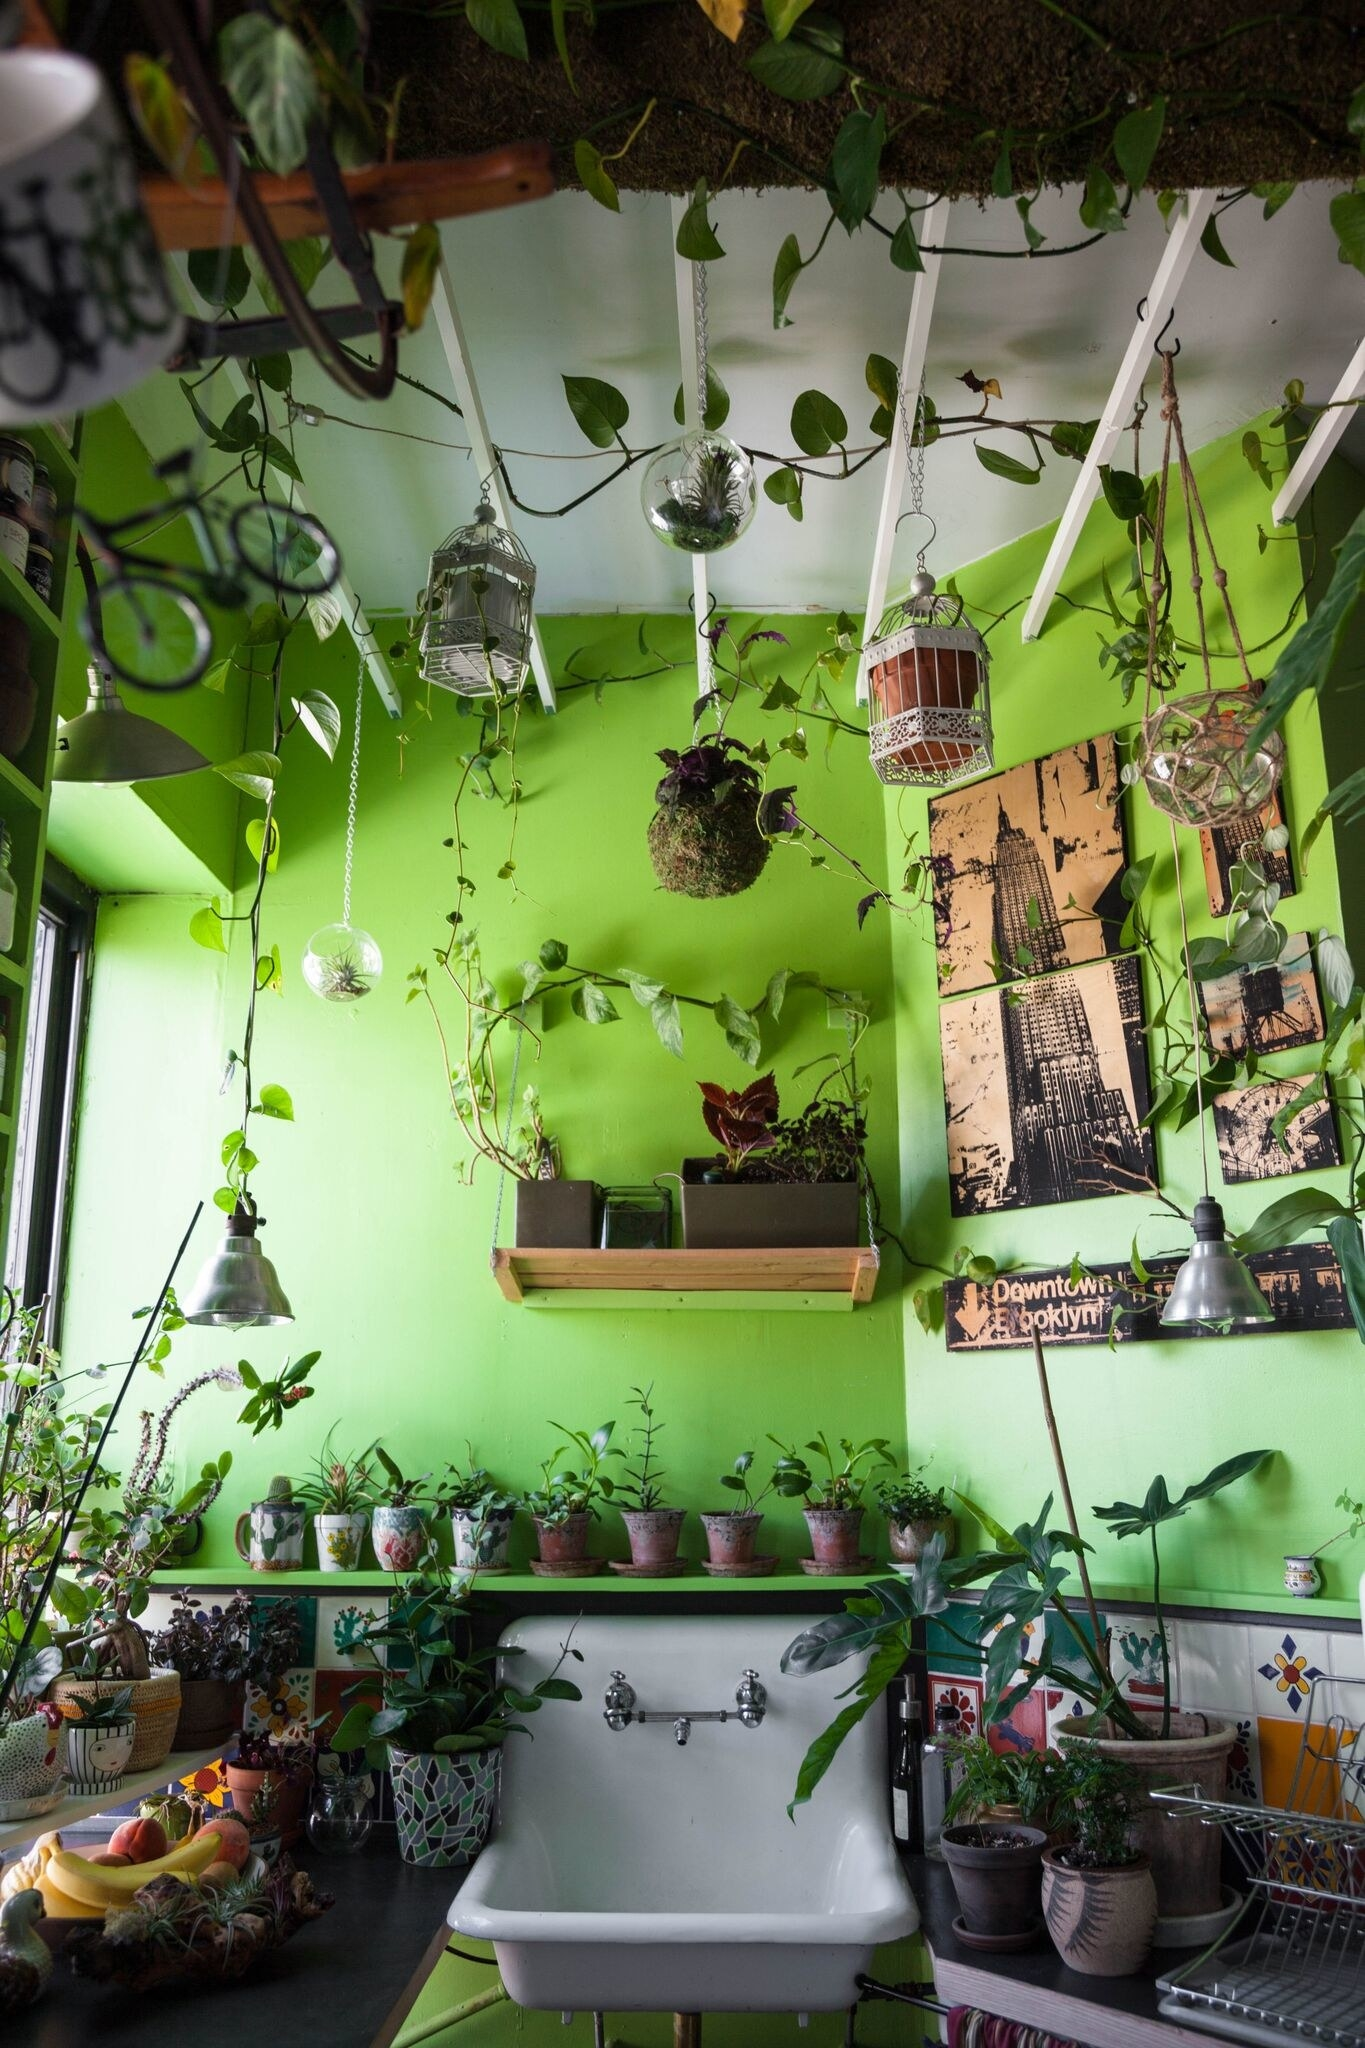 We Asked An Expert About The Benefits Of Keeping Houseplants